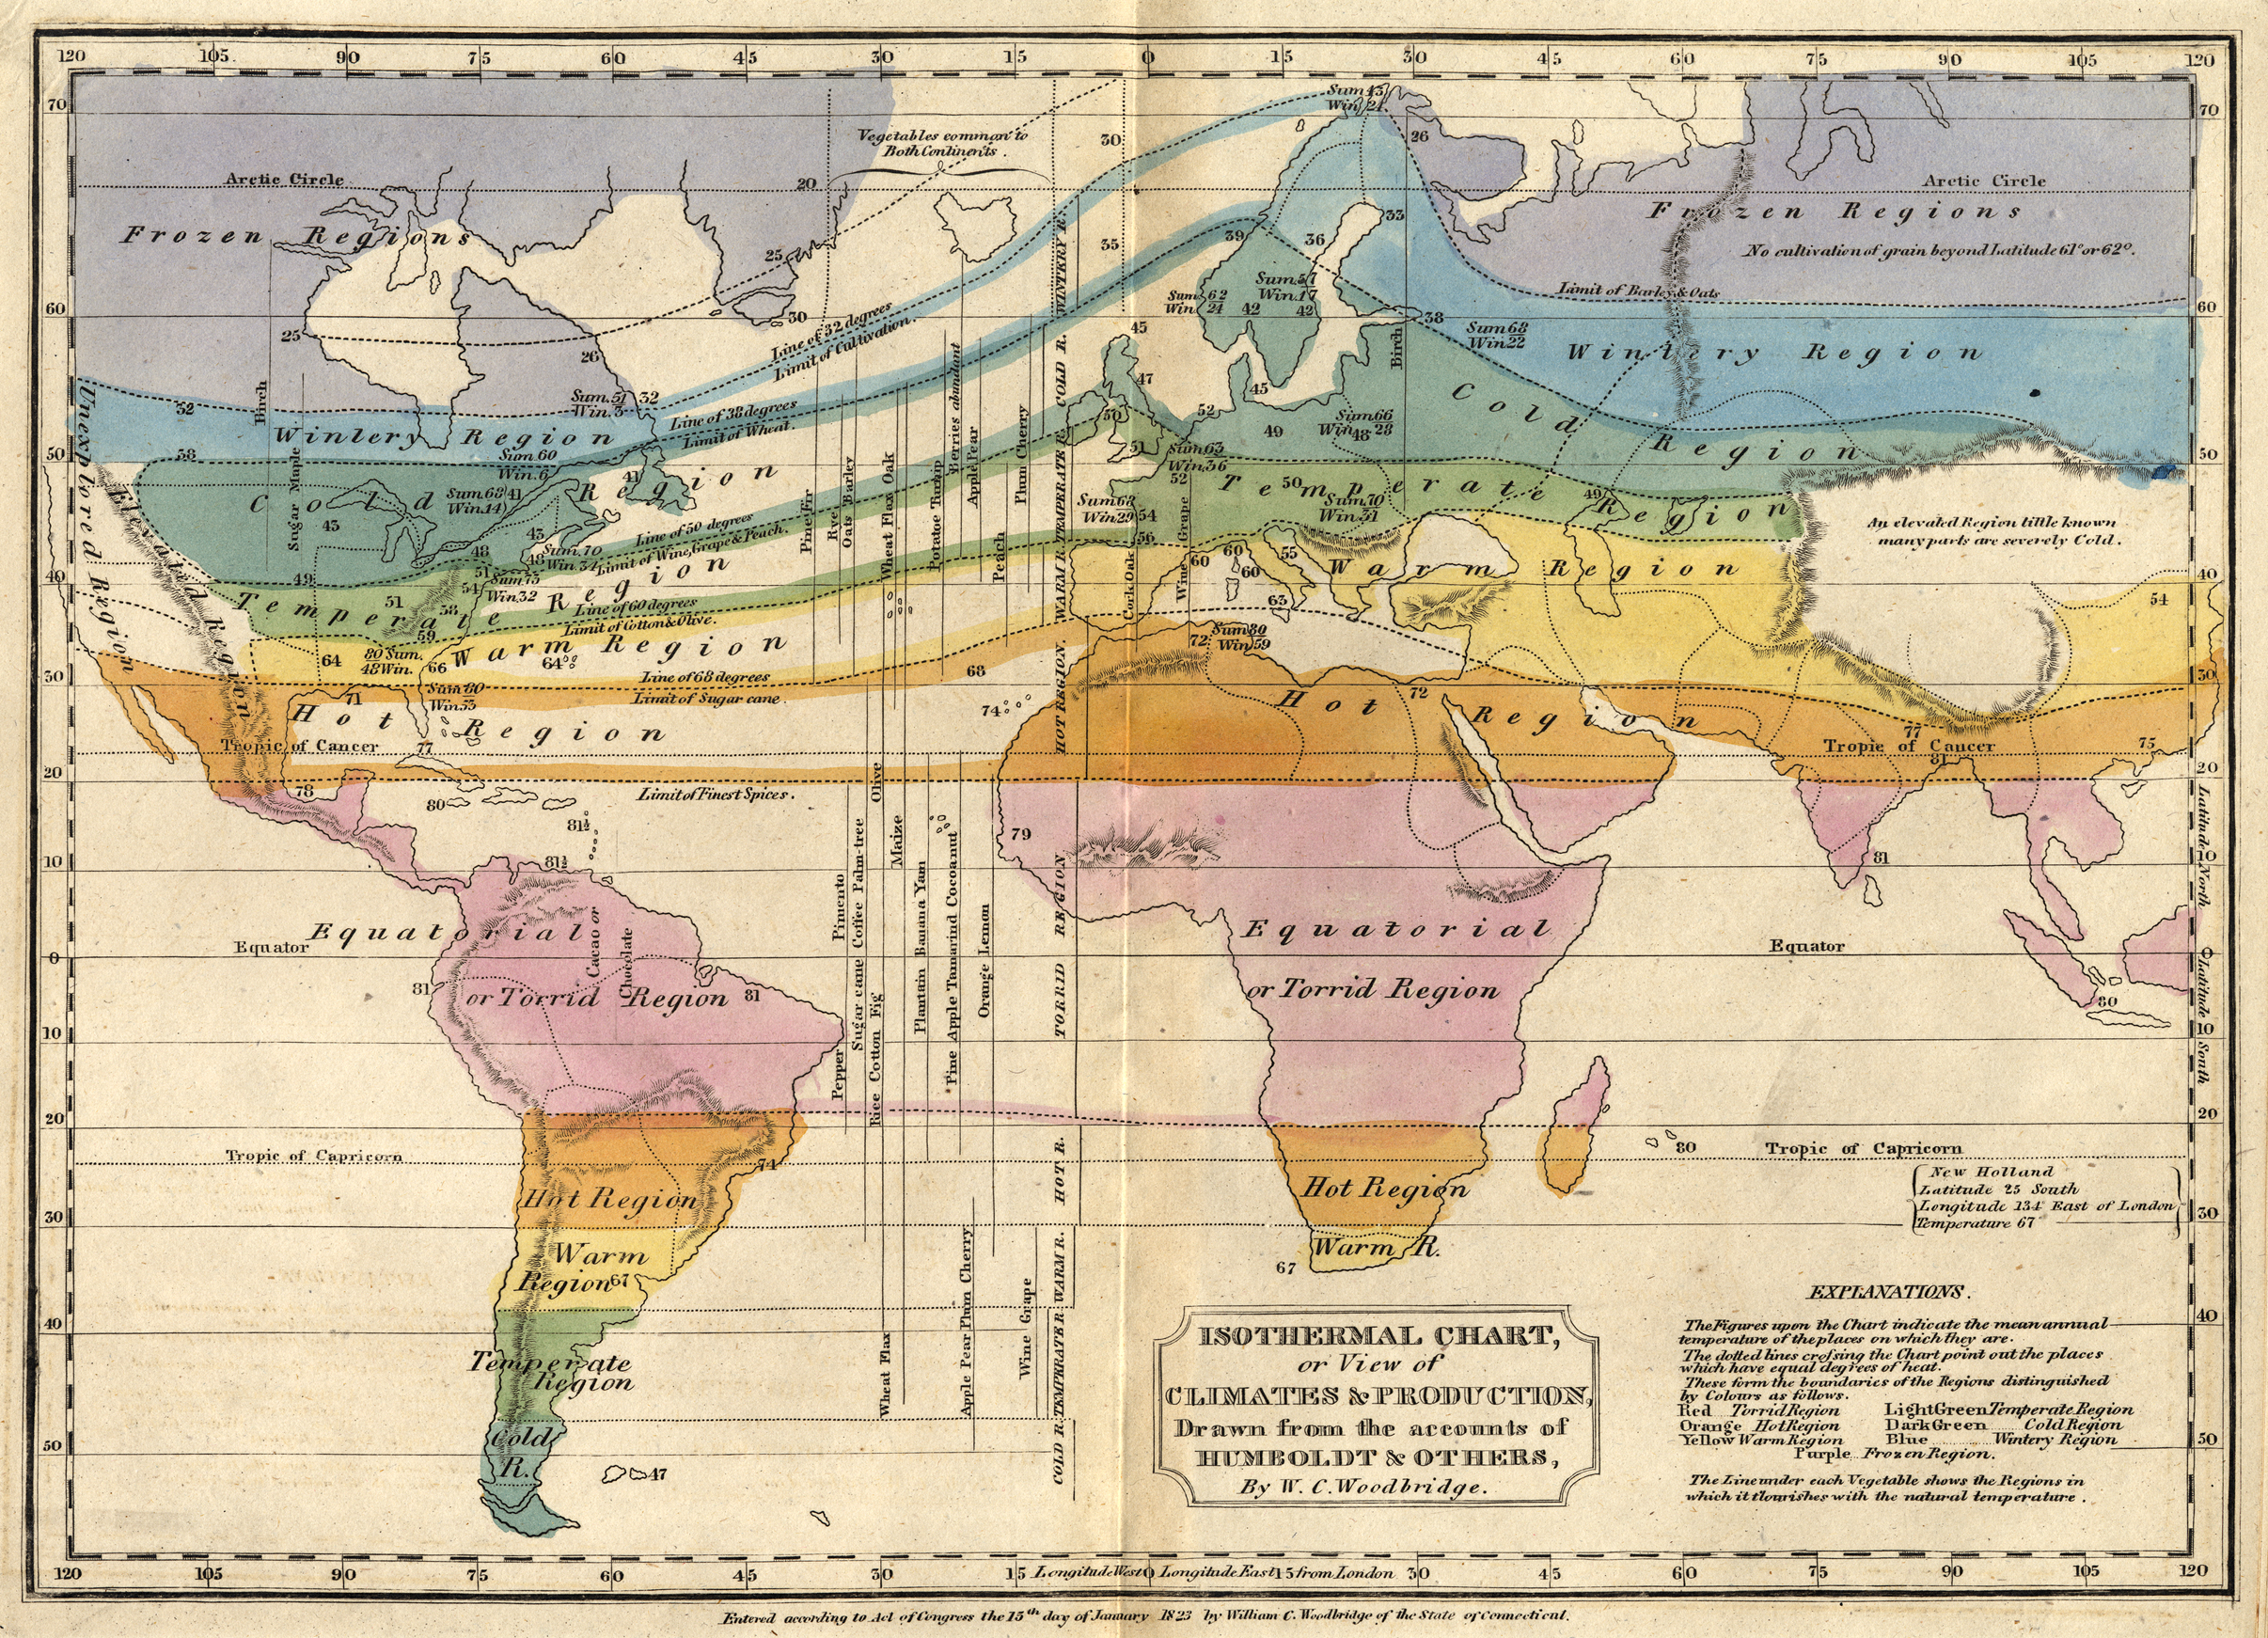 Soon after Humboldt's initial publications, early meteorologists like, William Channing Woodbridge, assembled his findings into early climate maps ( source )